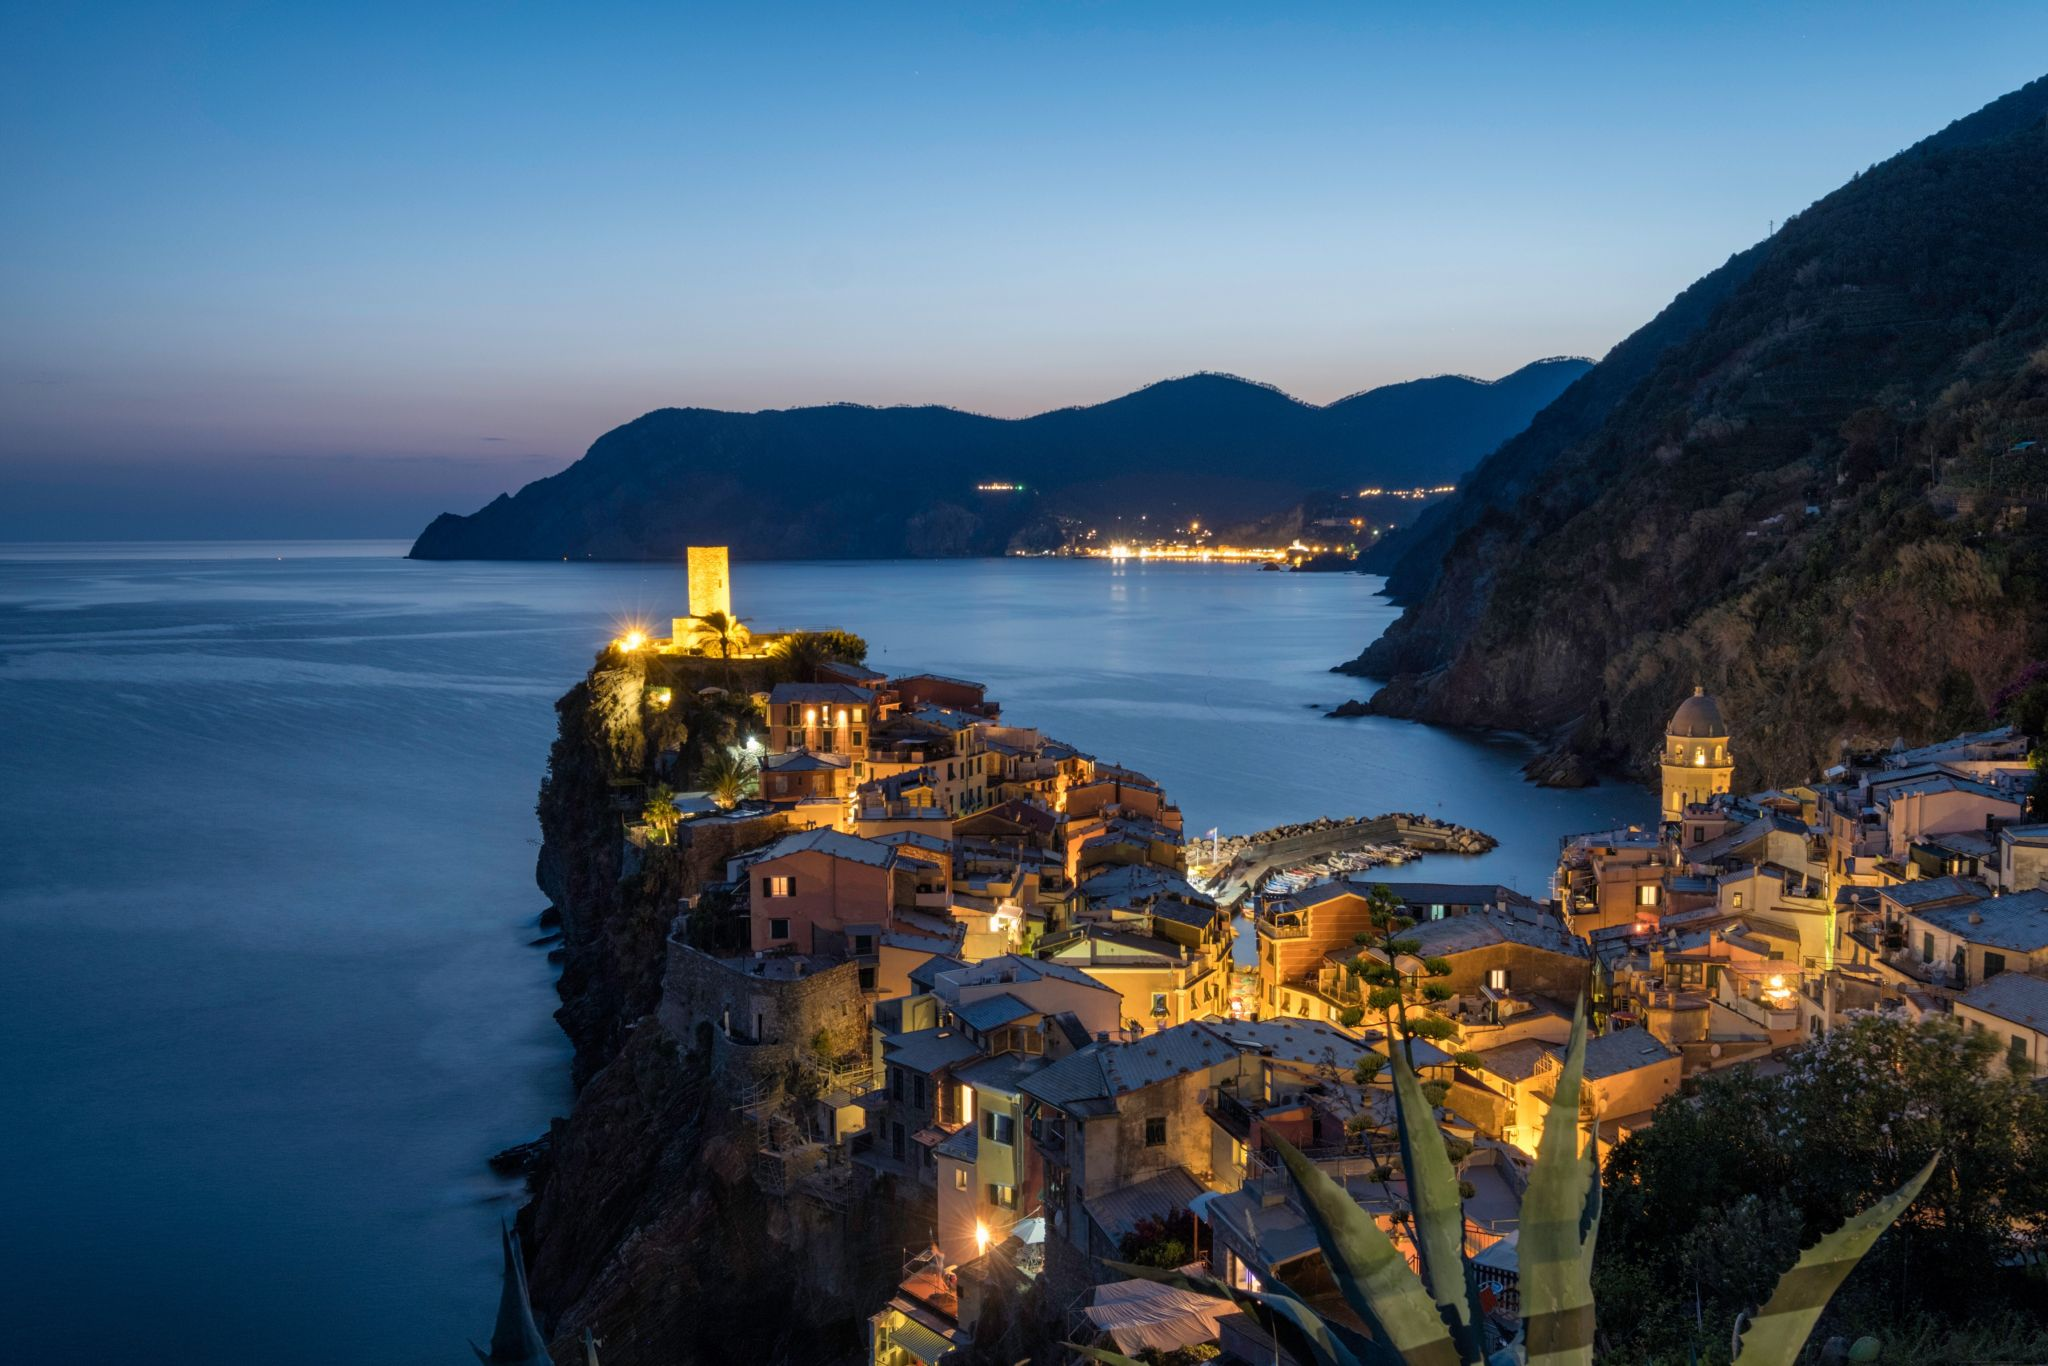 Vernazza from the hiking trail above the town, Italy